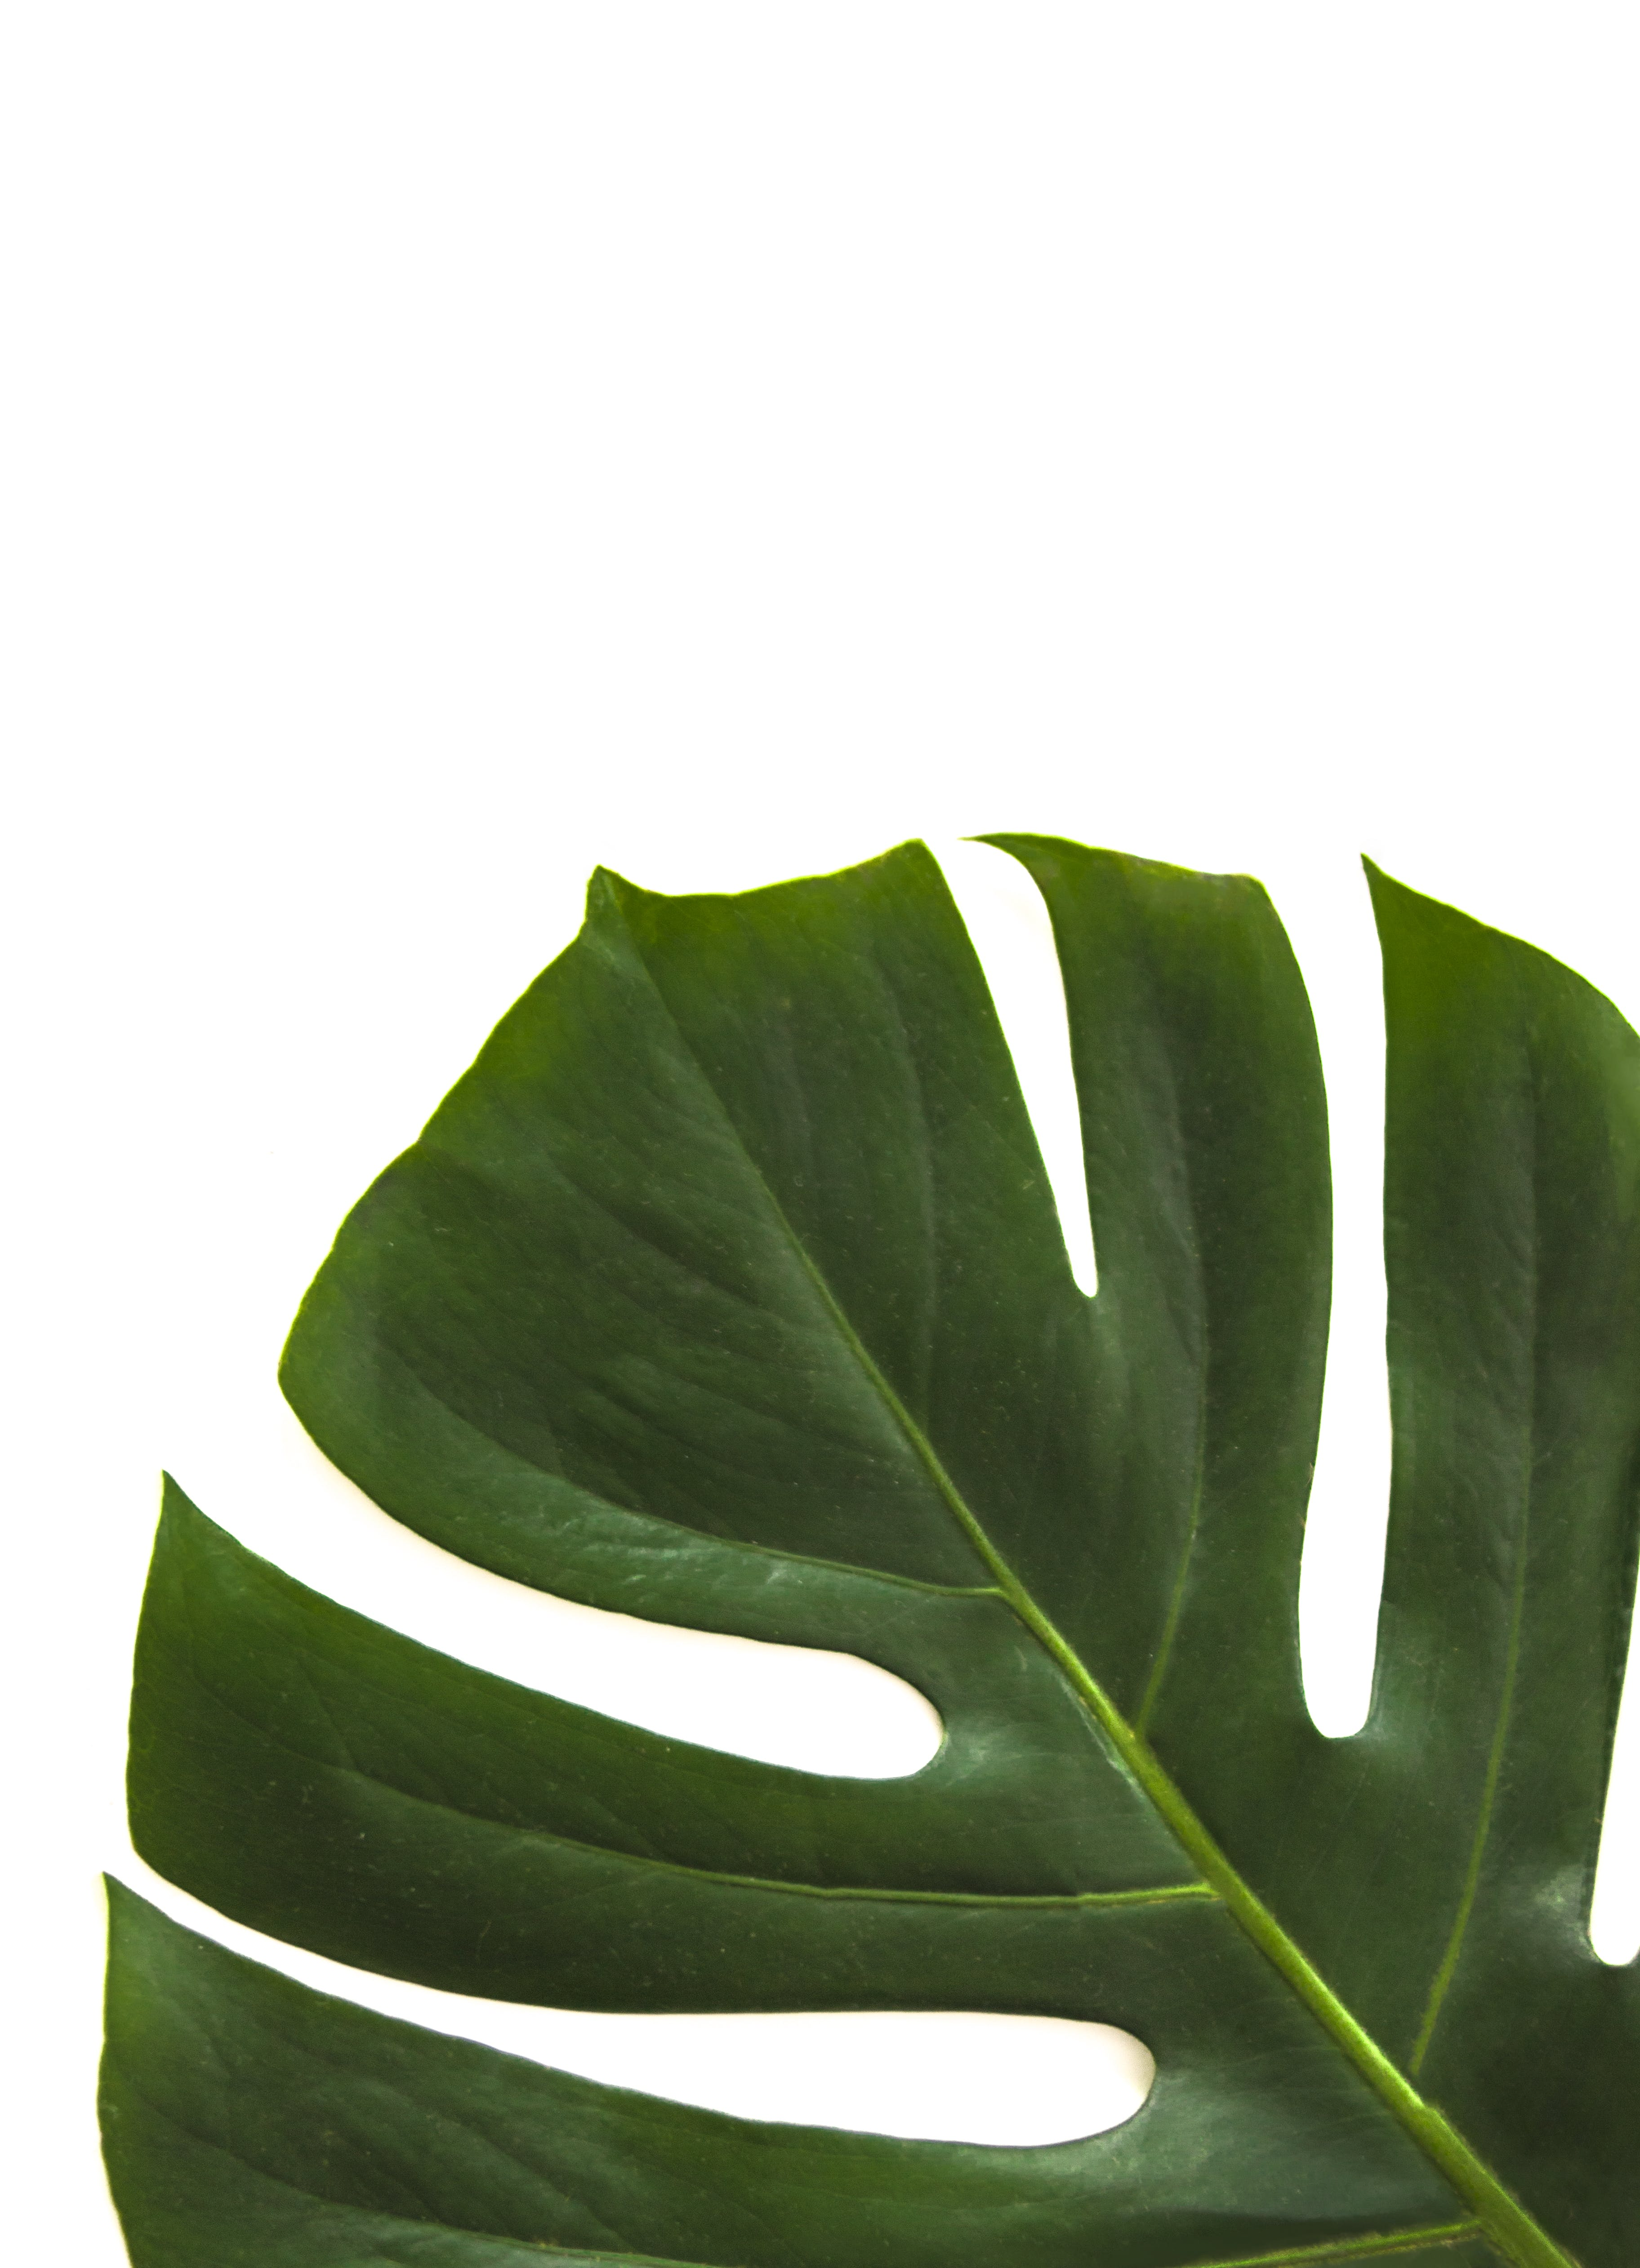 Close-up Photo of Swiss Cheese Leaf